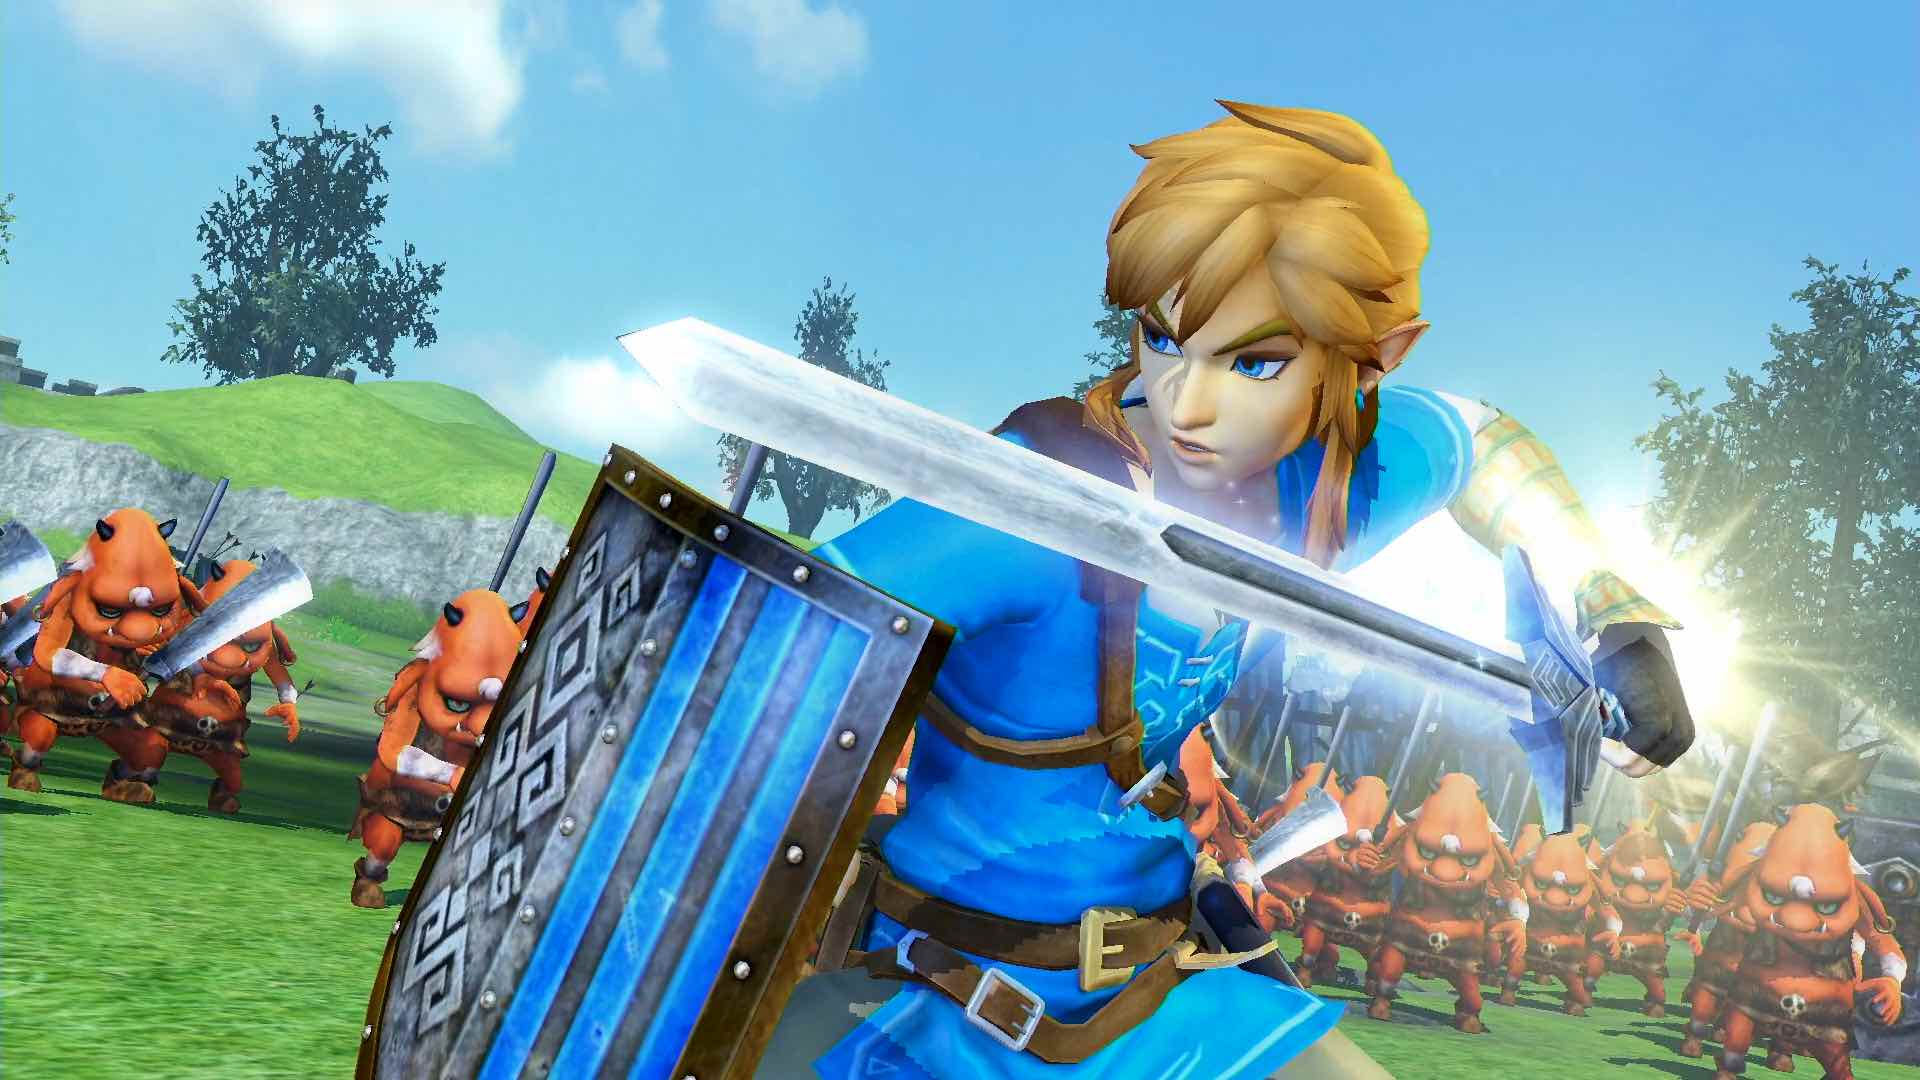 hyrule-warriors-definitive-edition-screenshot-1